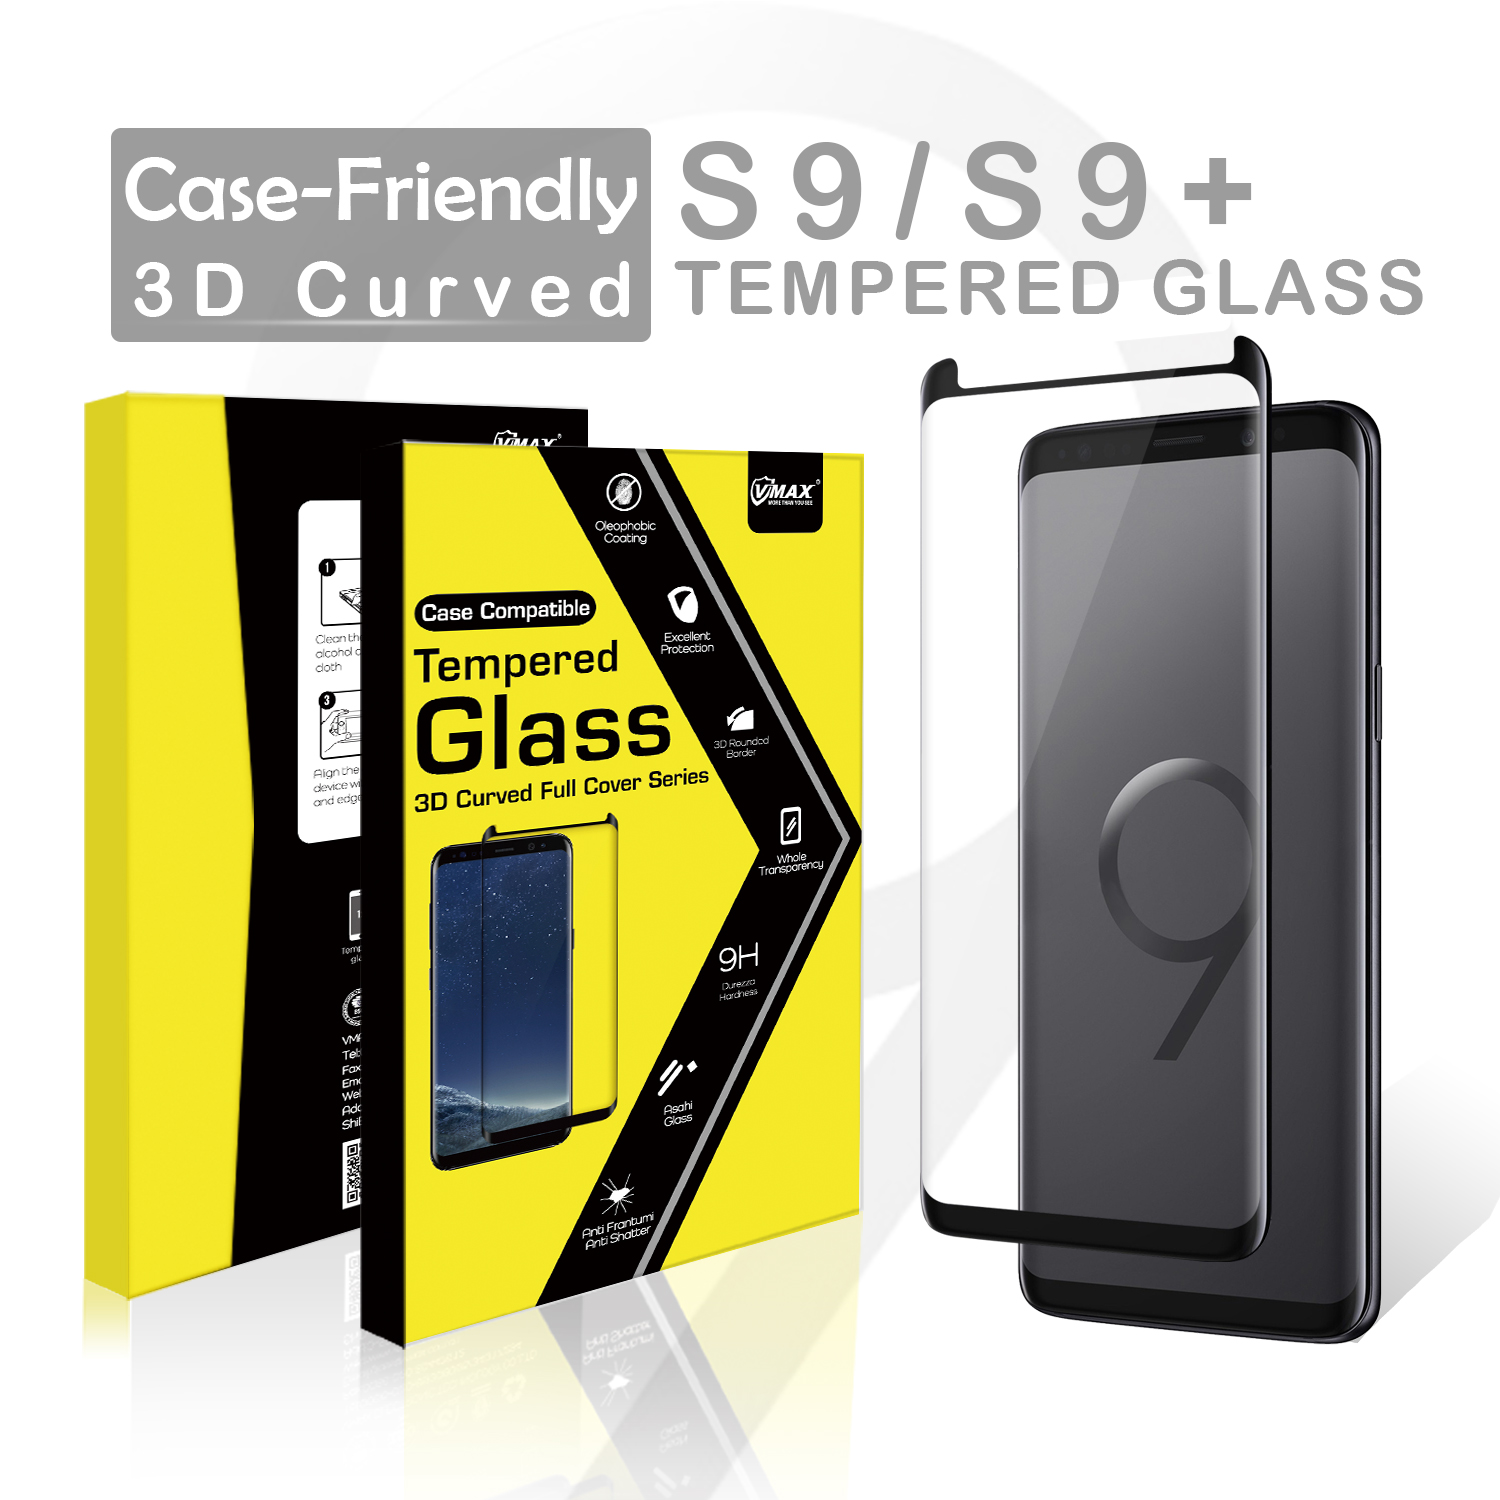 buy online b522b 11a03 Wholesales S9 Plus Case Friendly Tempered Glass Screen Protector For  Samsung Galaxy S9 - Buy Screen Protector For Samsung Galaxy S9 Plus,Curved  ...